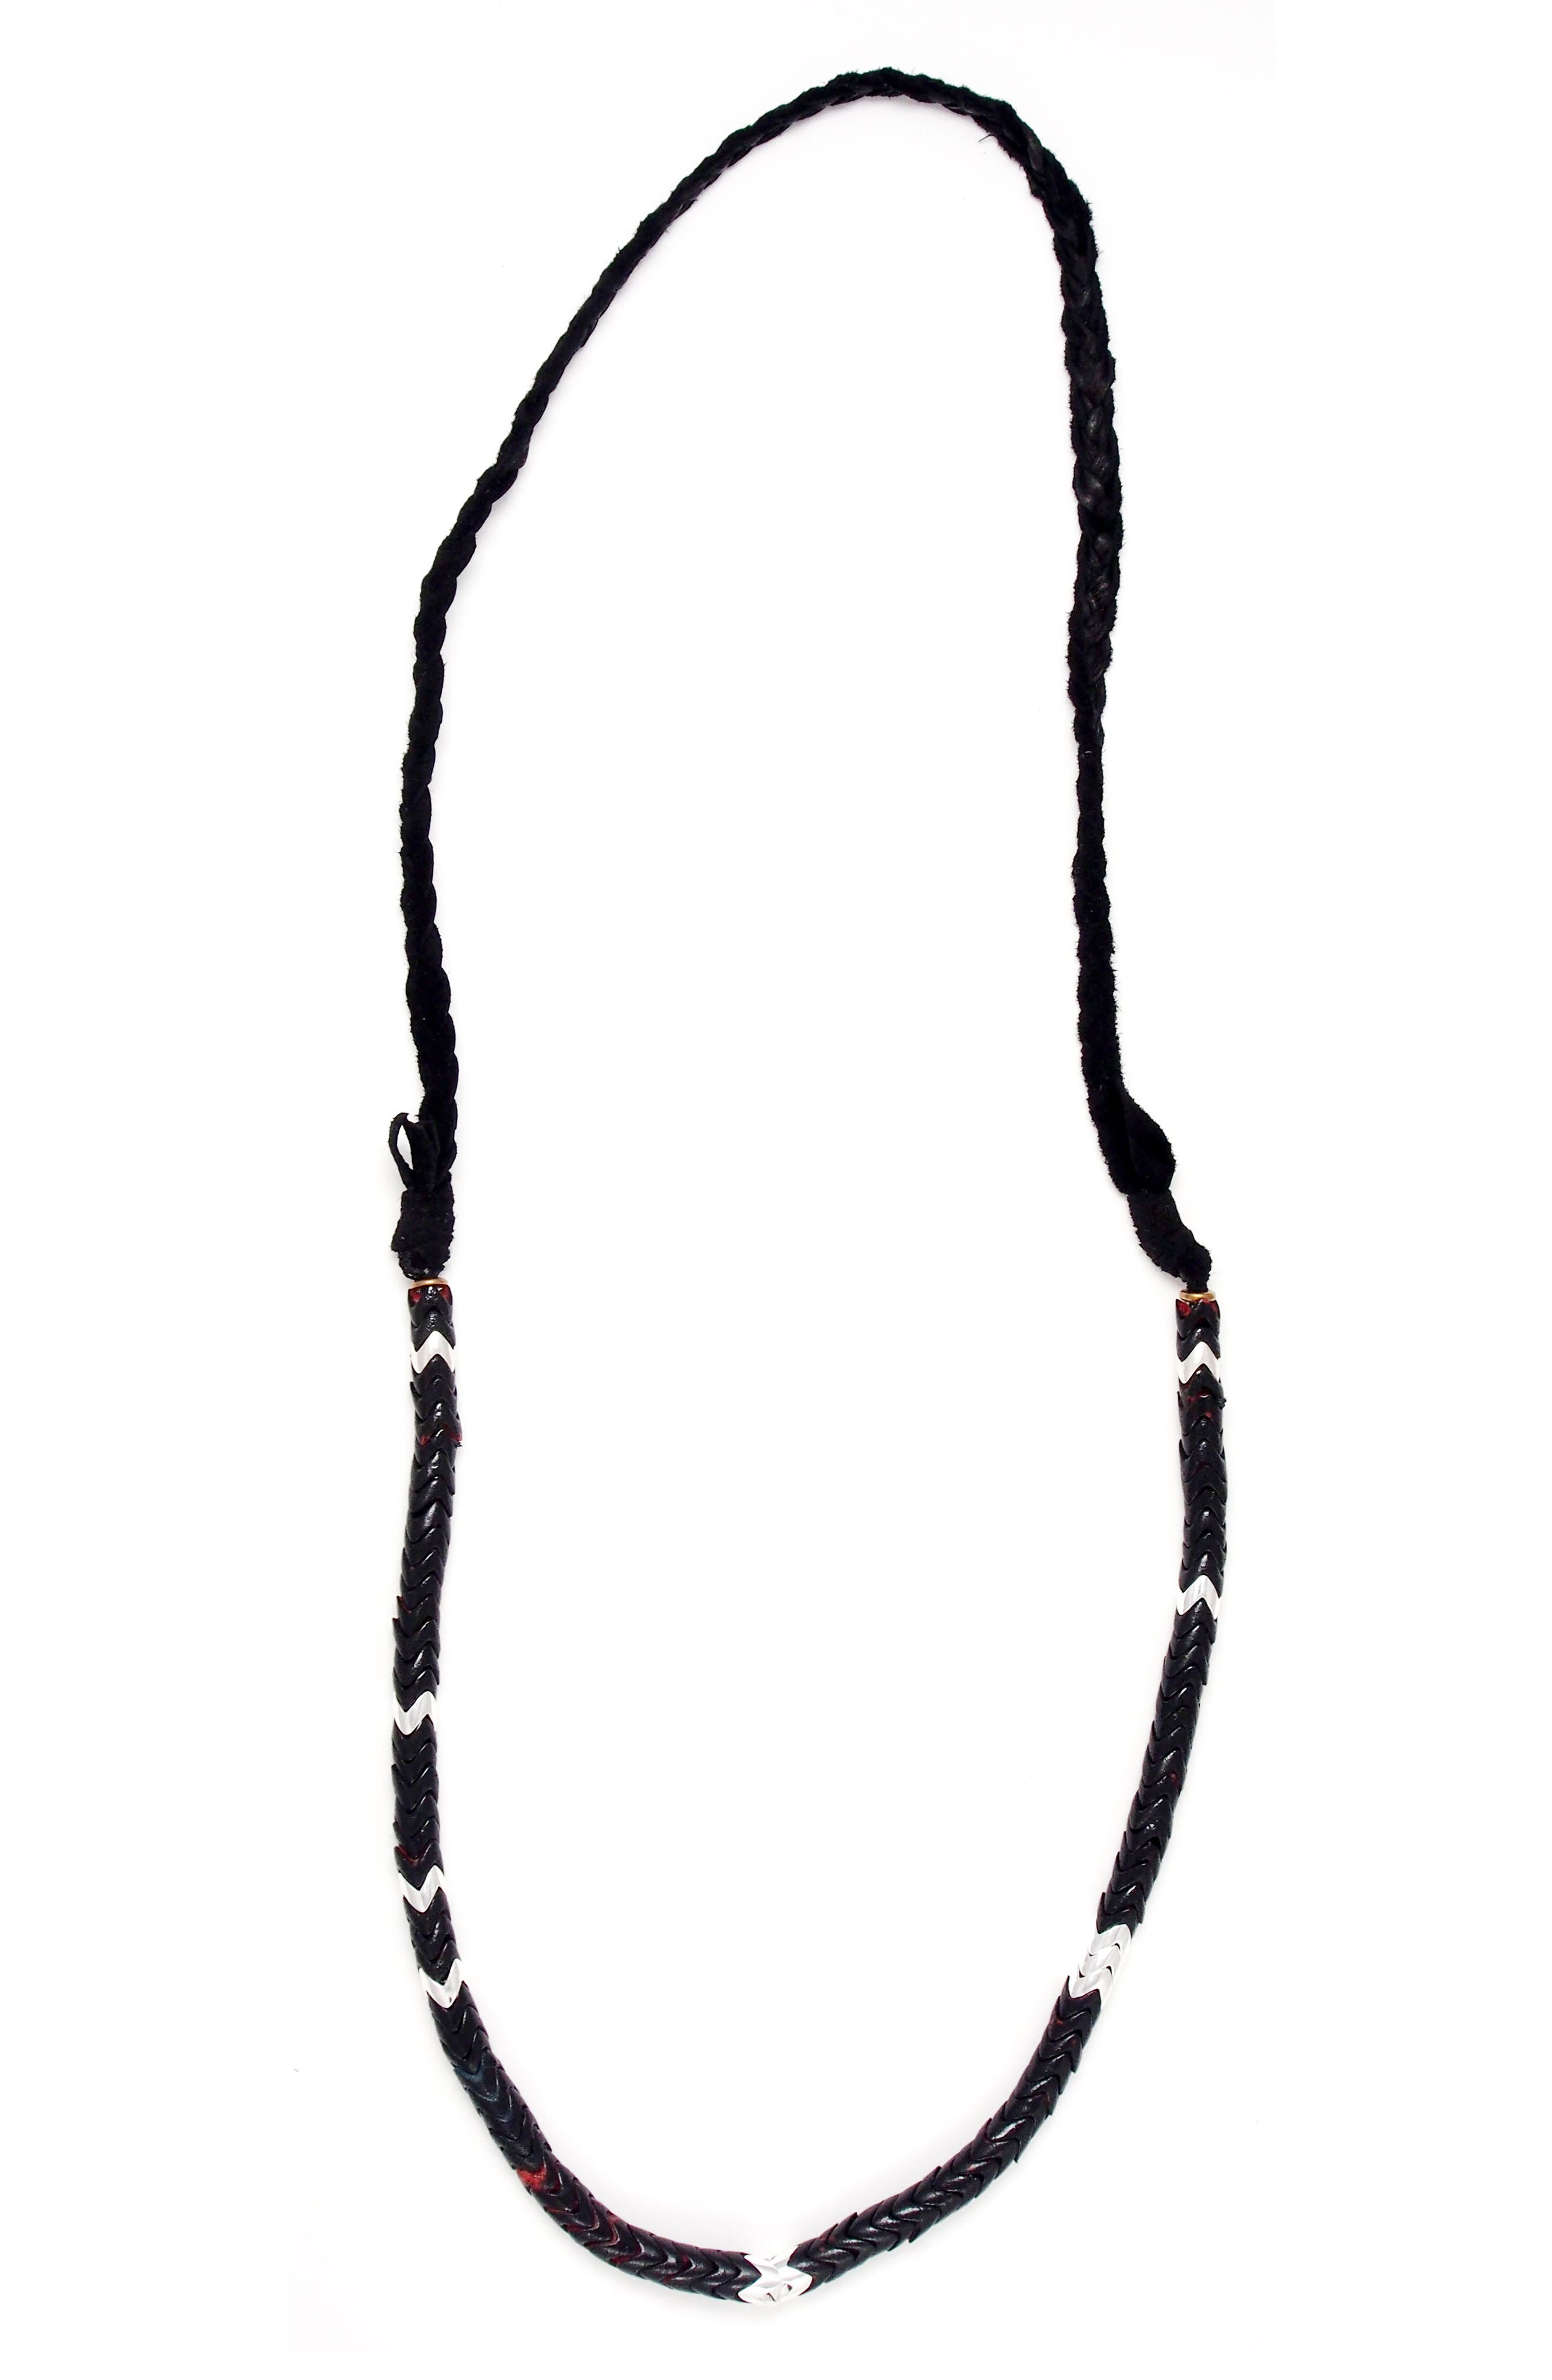 Snake Bead Necklace,                             Main thumbnail 1, color,                             001